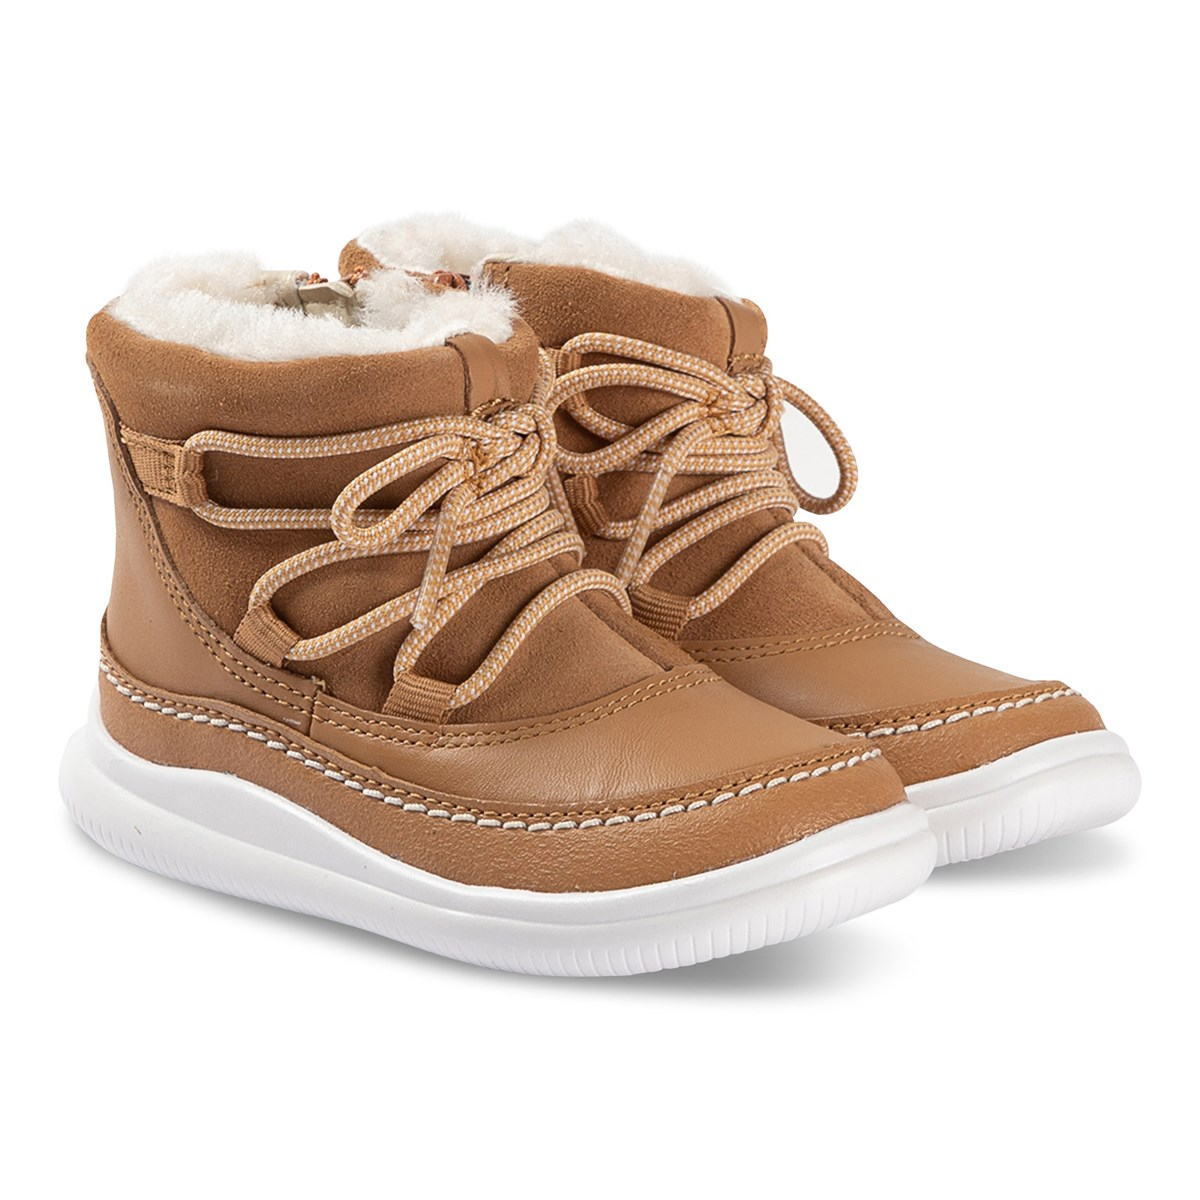 Clarks Tan Alpine Lace Up Boots